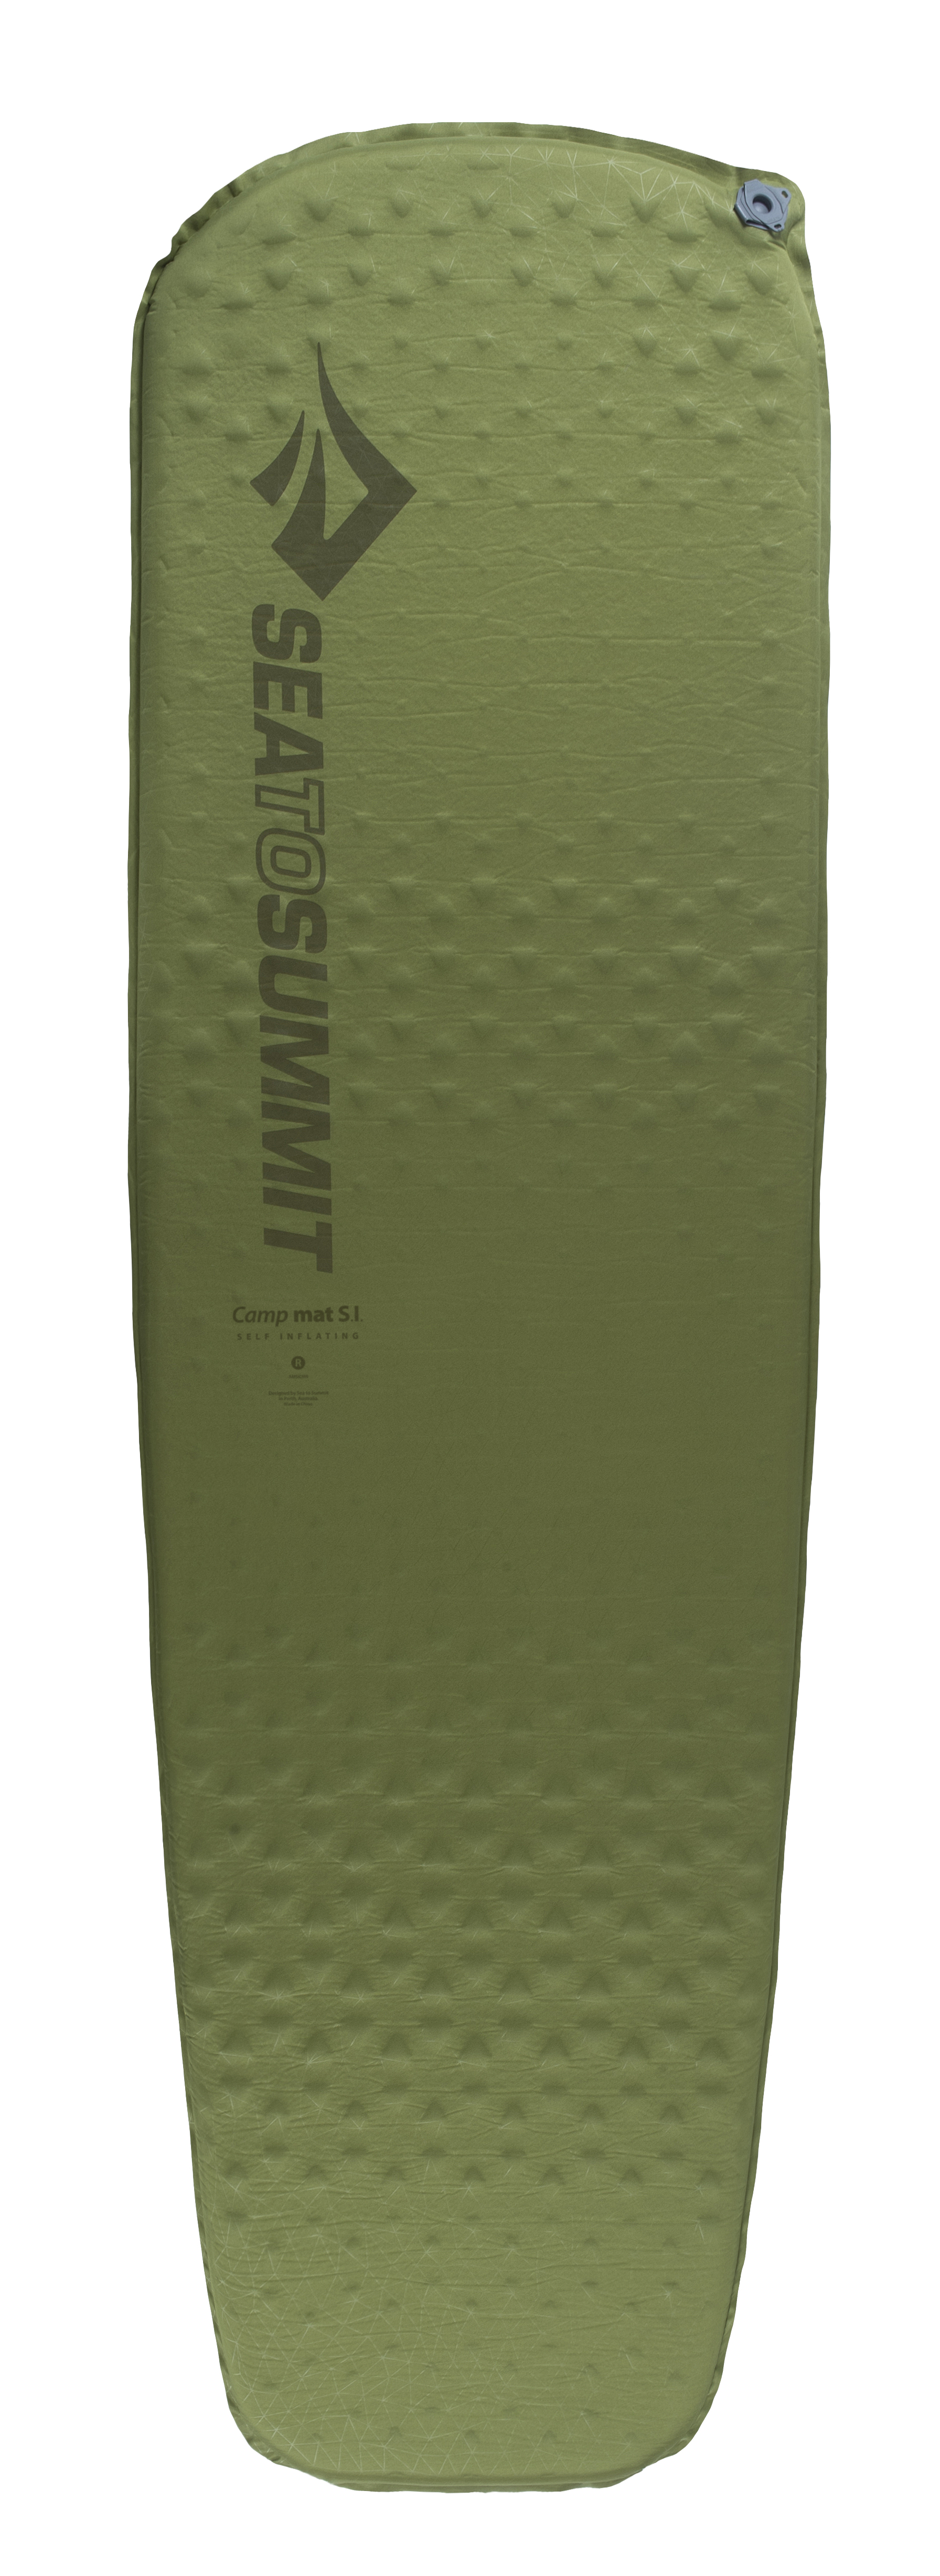 Sea to Summit Camp SI Matte olive Large